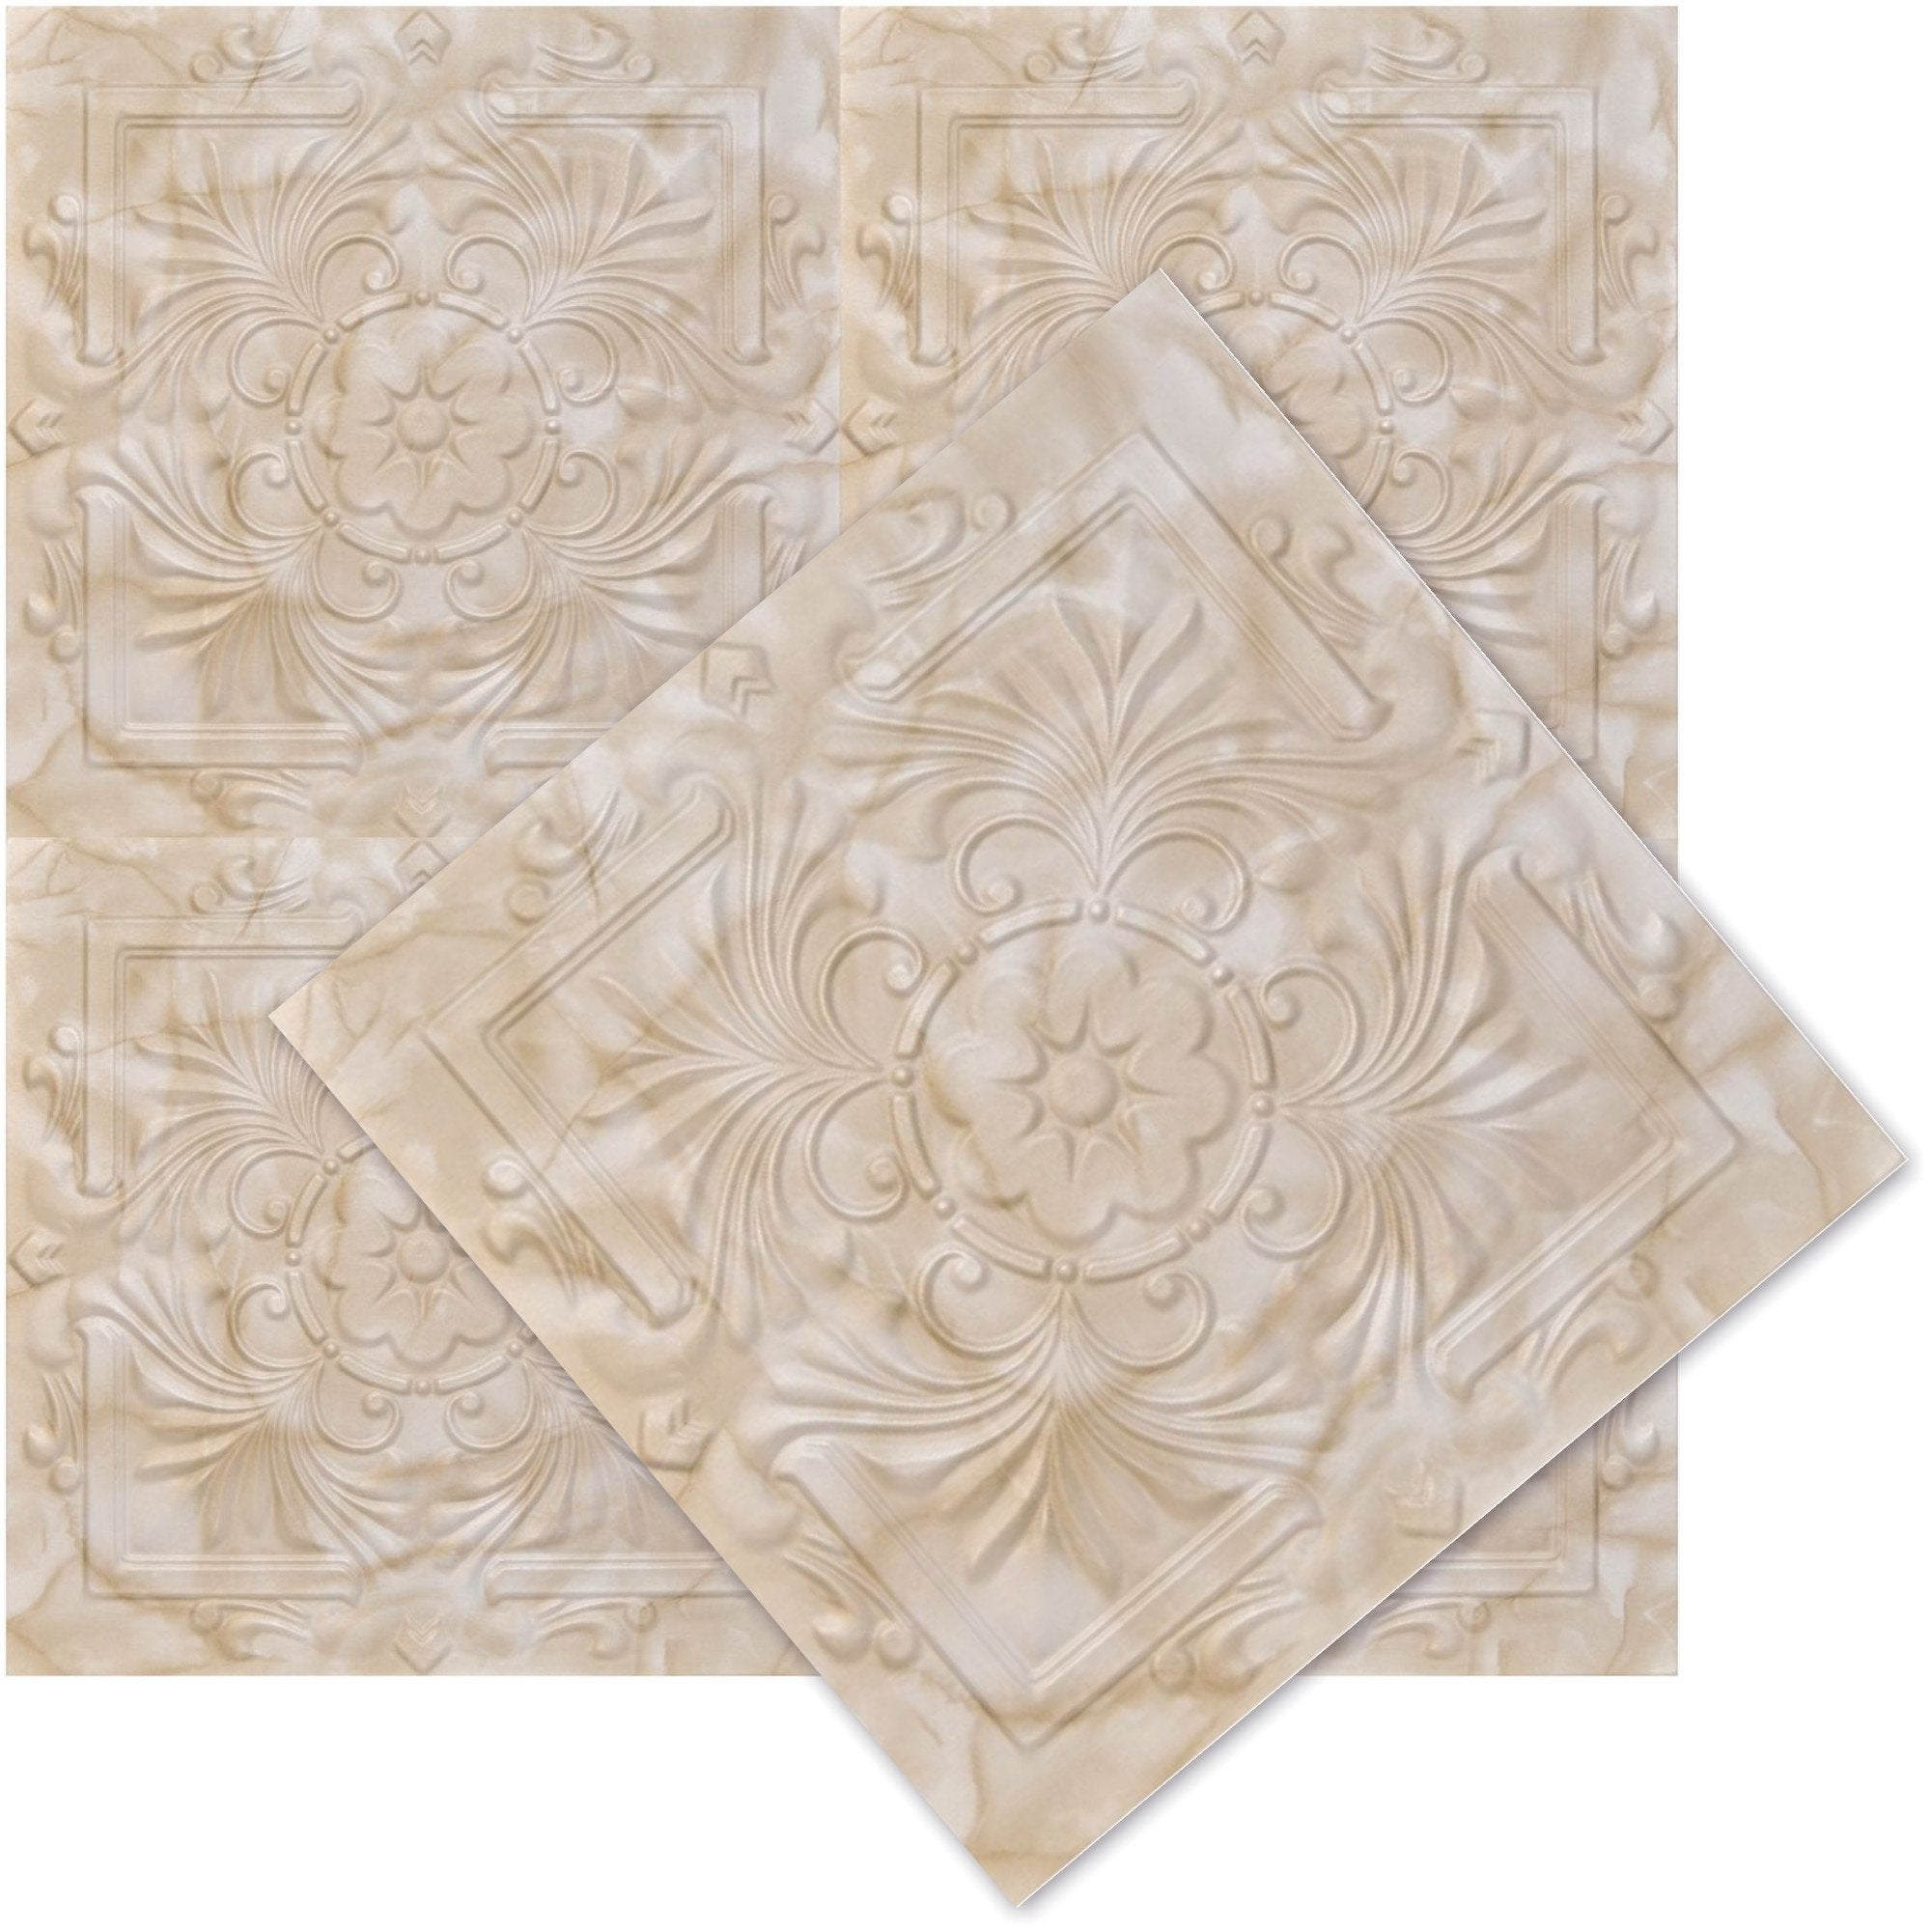 Decorative Ceiling Tile Cashbuild